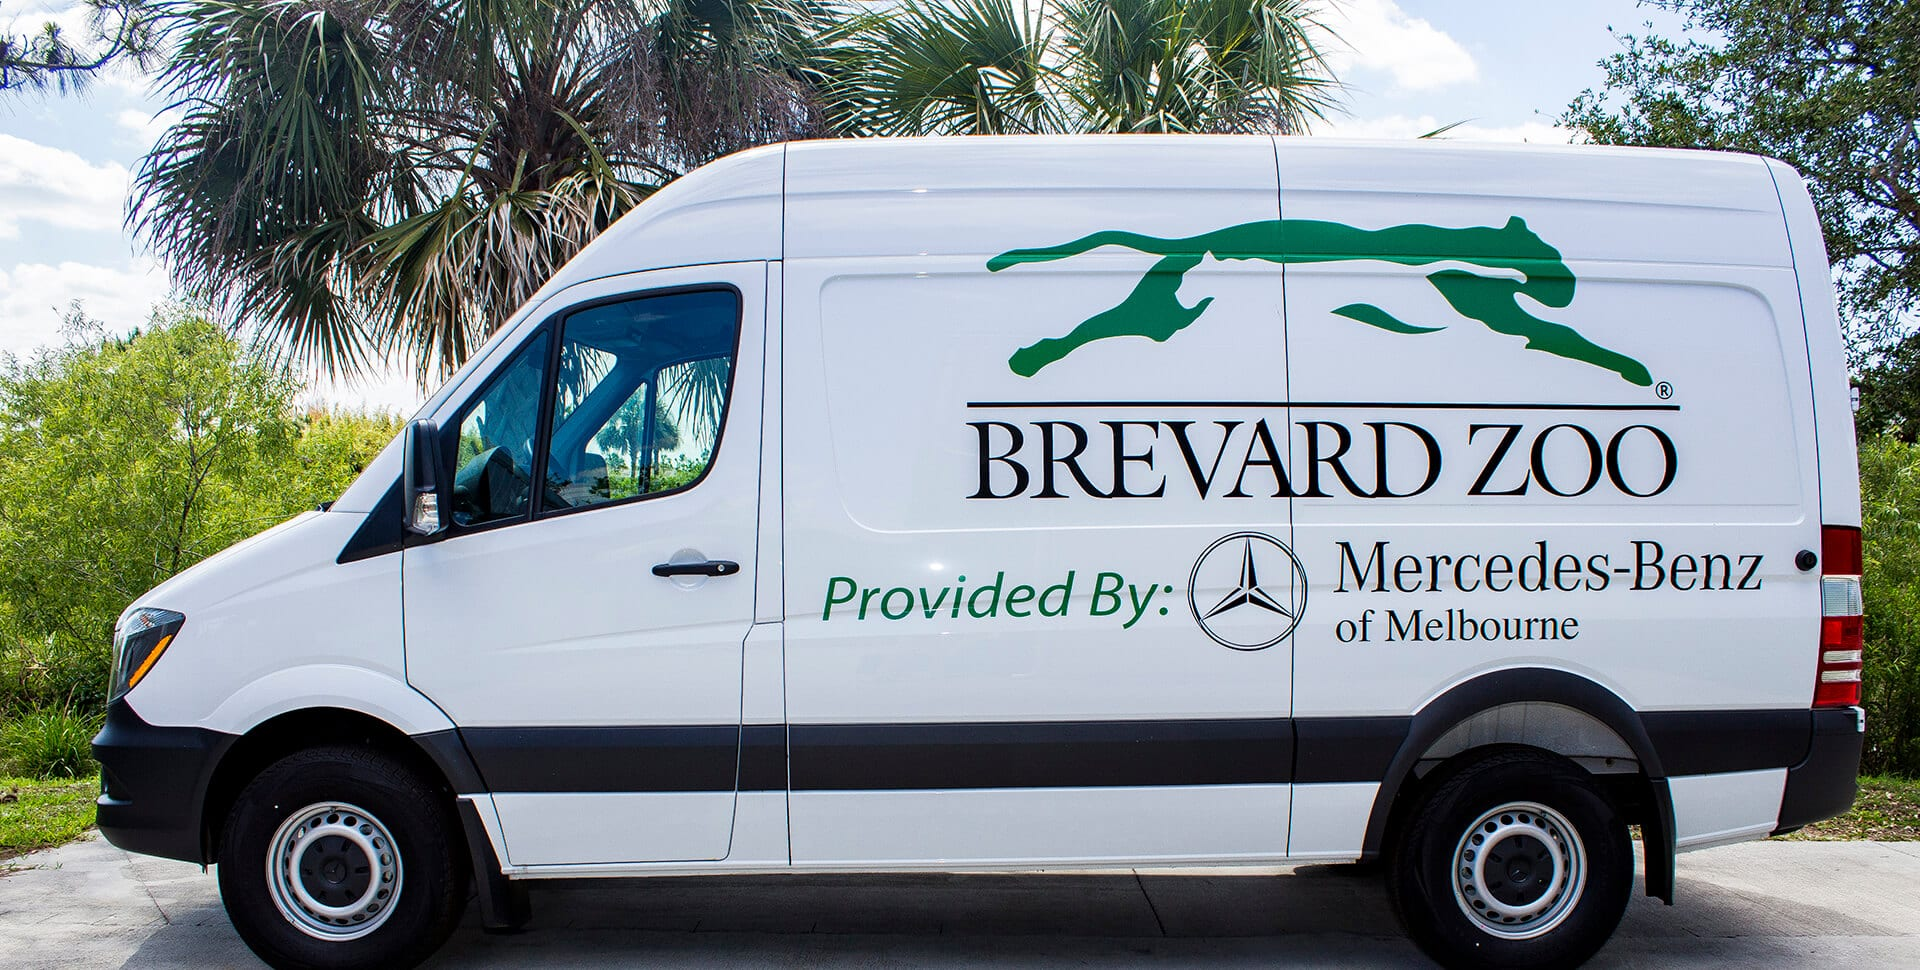 Mercedes-Benz of Melbourne Van donated to Brevard Zoo